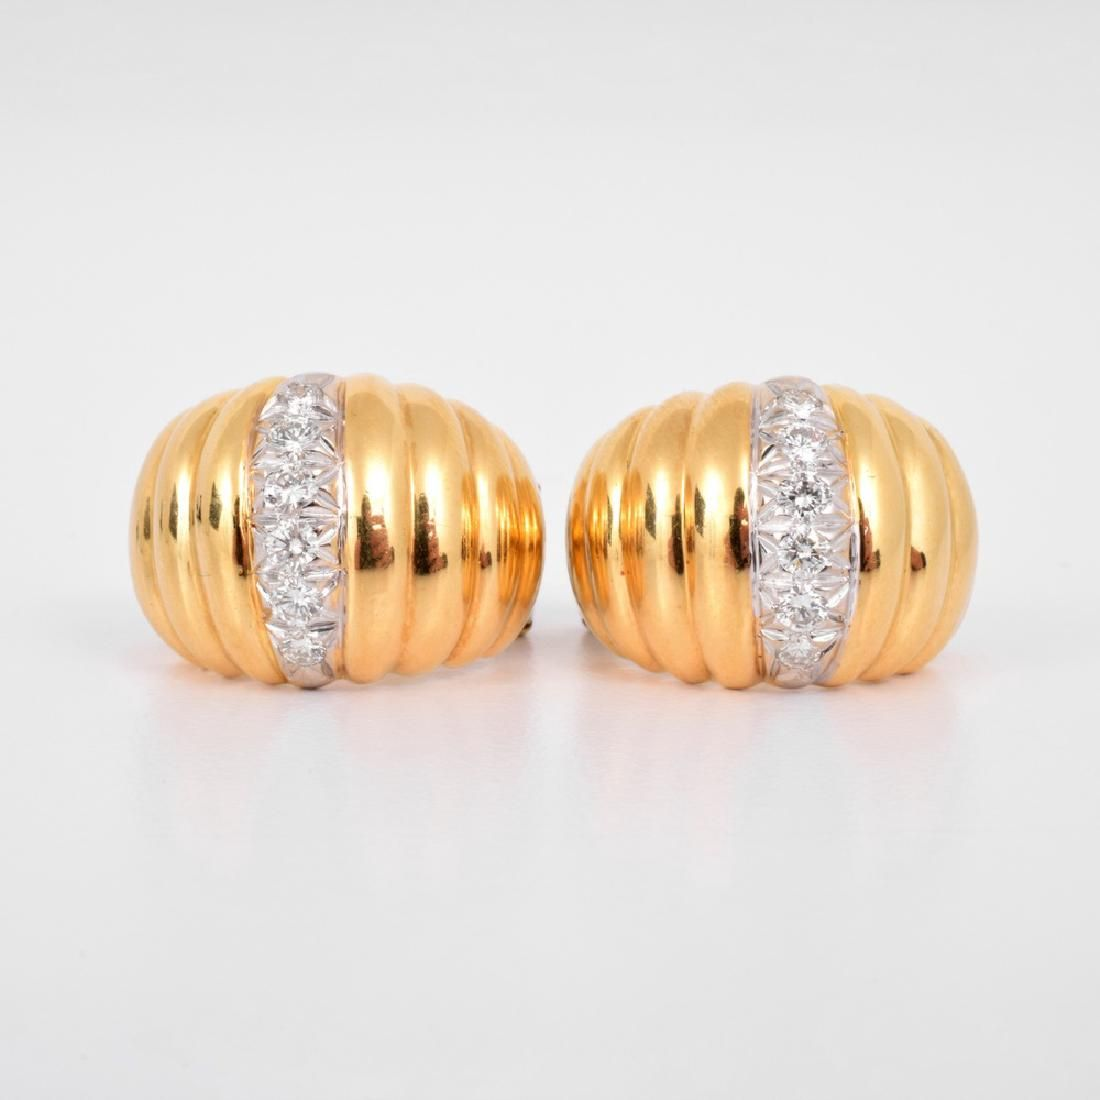 Lot: 18K Gold & Diamonds Vintage Estate Earrings, Lot Number: 0427, Starting Bid: $900, Auctioneer: Palm Beach Modern Auctions , Auction: Session 1: SELECT WORKS and Session 2, Date: May 6th, 2017 EDT